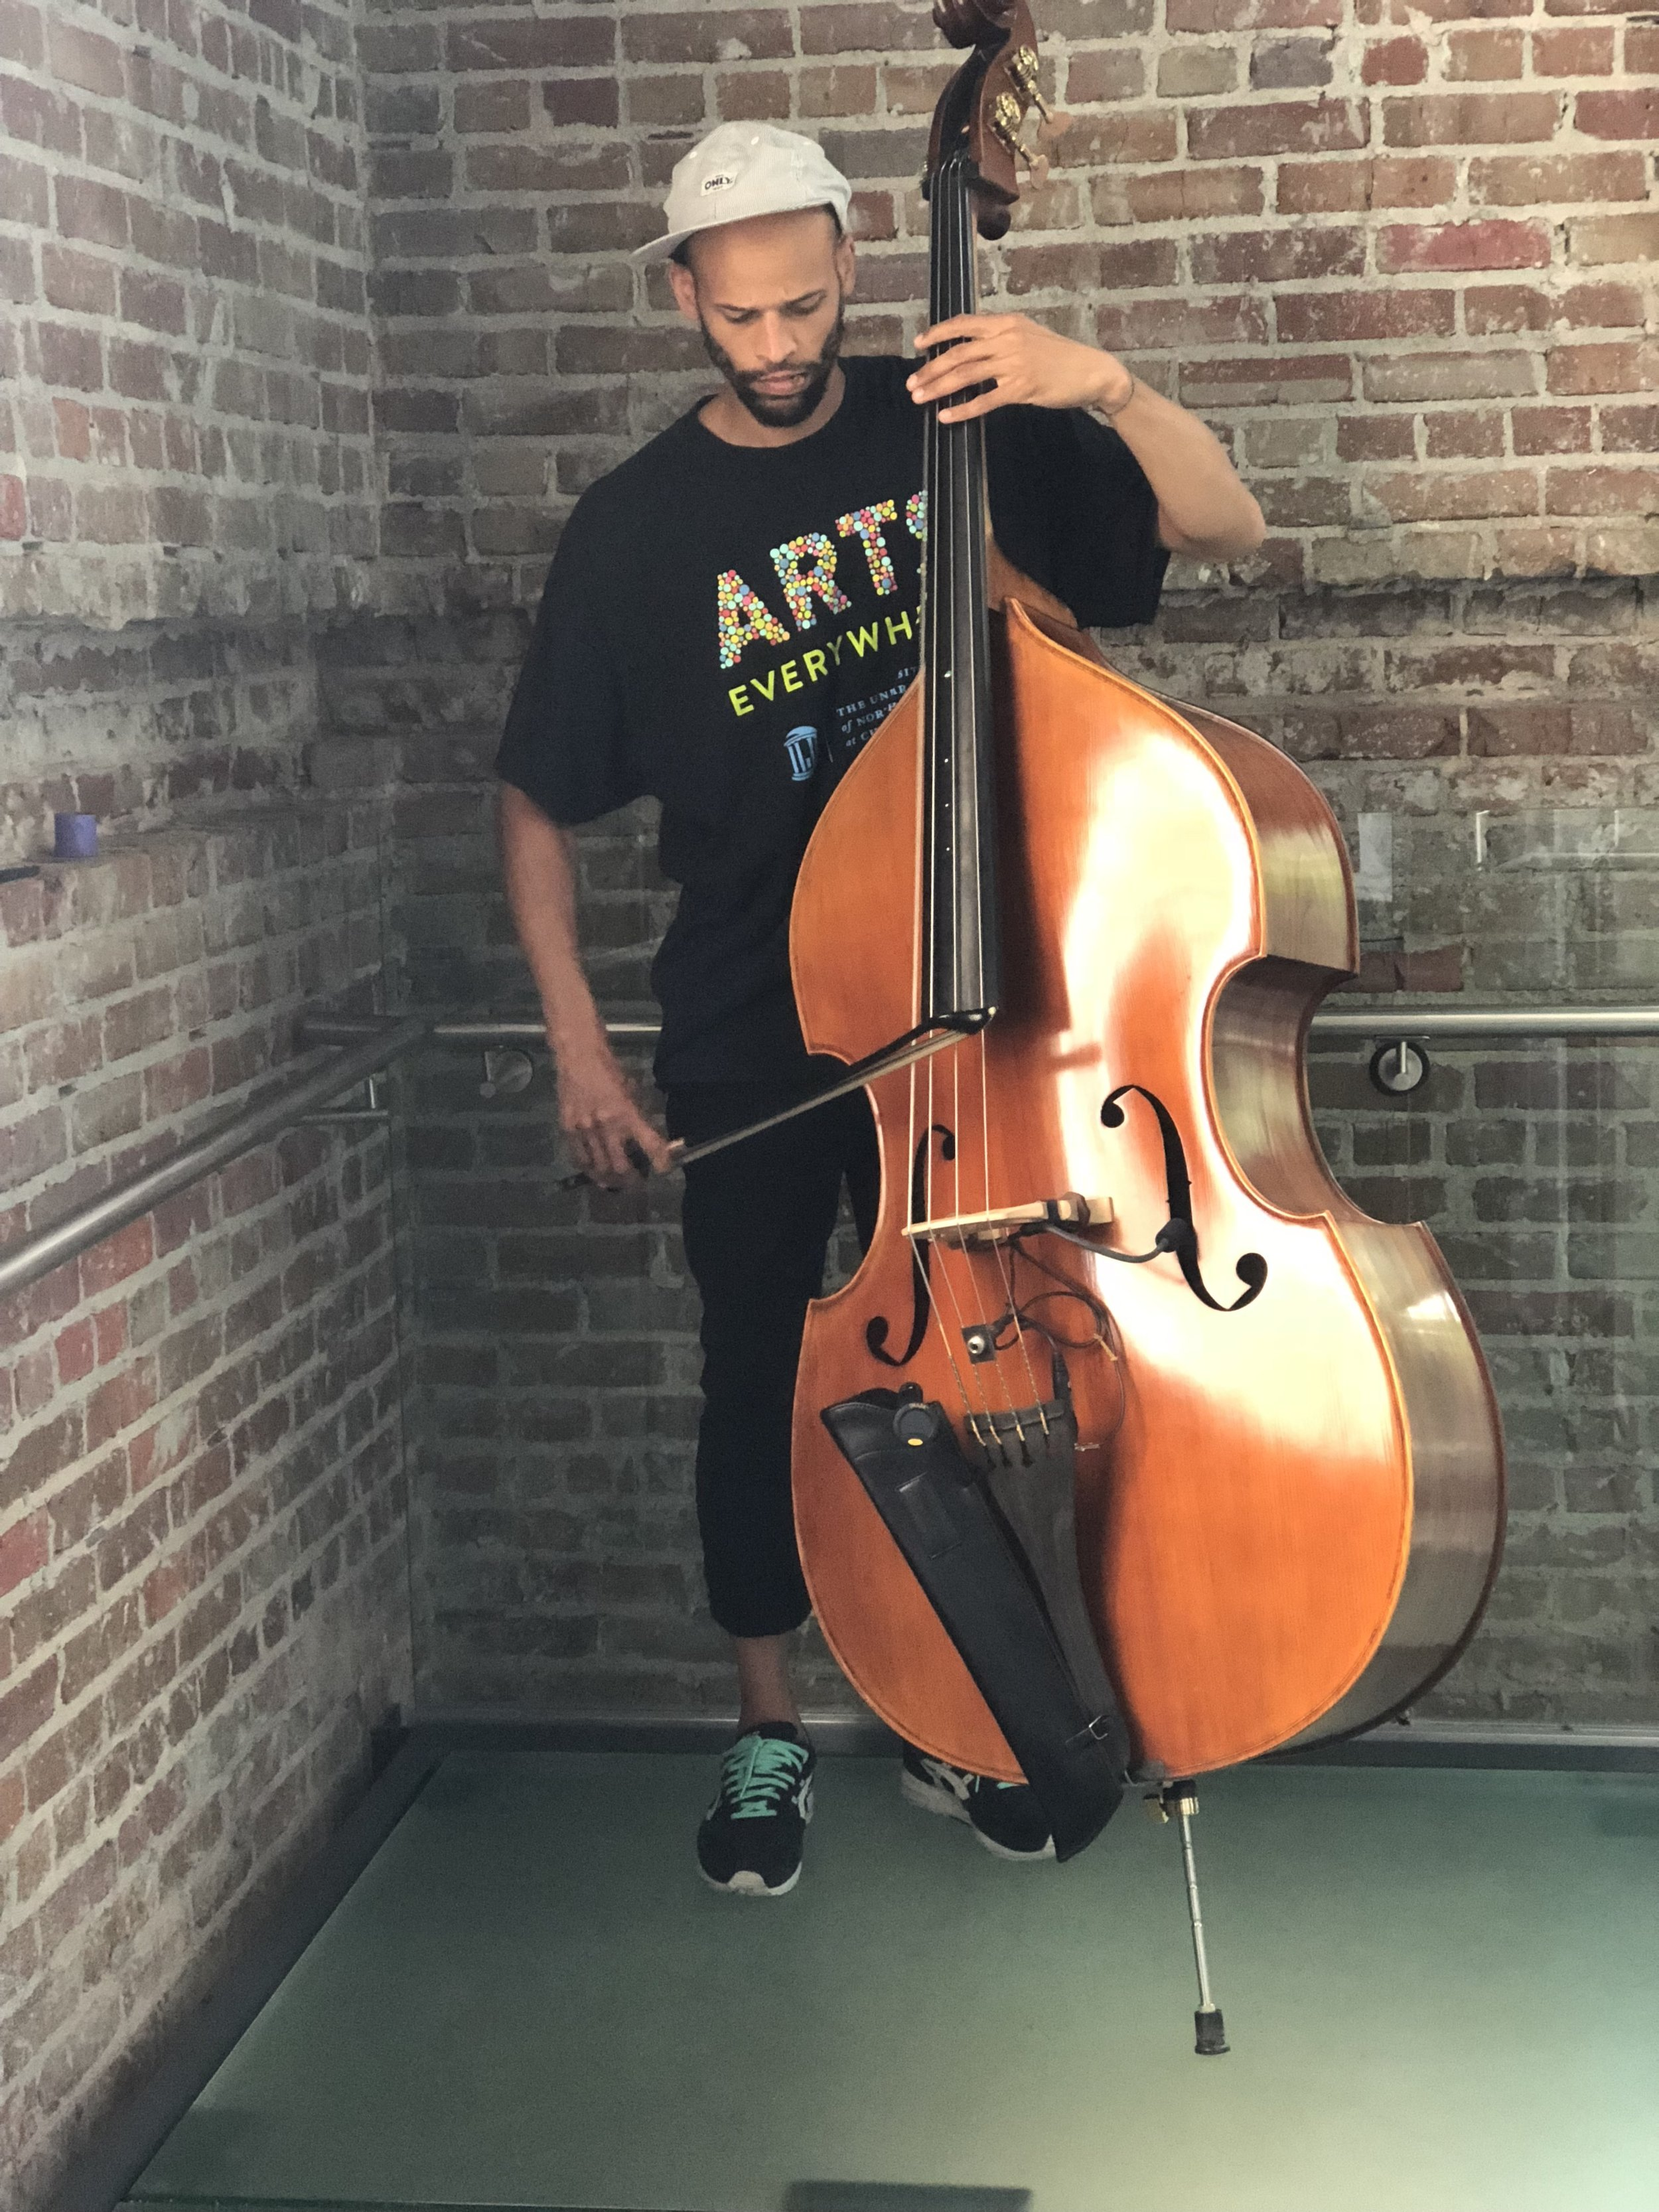 I'm a composer, performer, and multi-instrumentalist focusing on upright and electric bass, as well as a member of the award winning tap dance company,  Dorrance Dance , the indie band  Darwin Deez , and co-creator of  Music From The Sole , an afro-Brazilian tap dance and live band show. I learned rhythm and blues at an early age from a family of musicians where everyone could play at least a little piano and everyone was expected to sing. A Tucson, AZ native, I studied at Bard College and have been working as a professional musician in New York City for nearly two decades.